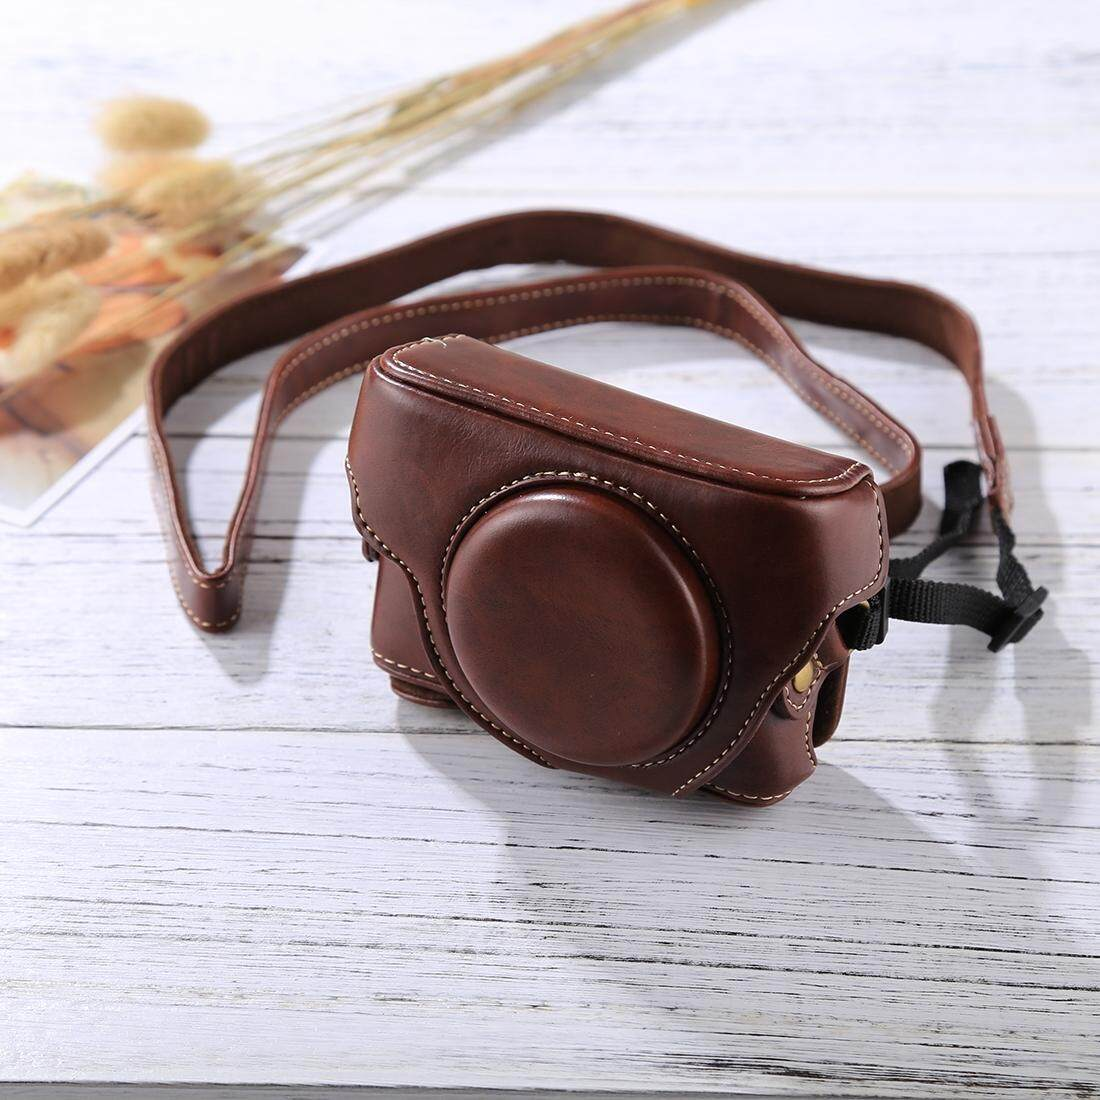 Sale Retro Style Leather Camera Case Bag With Strap For Sony Rx100 M3 M4 M5 Coffee Intl Sunsky Wholesaler